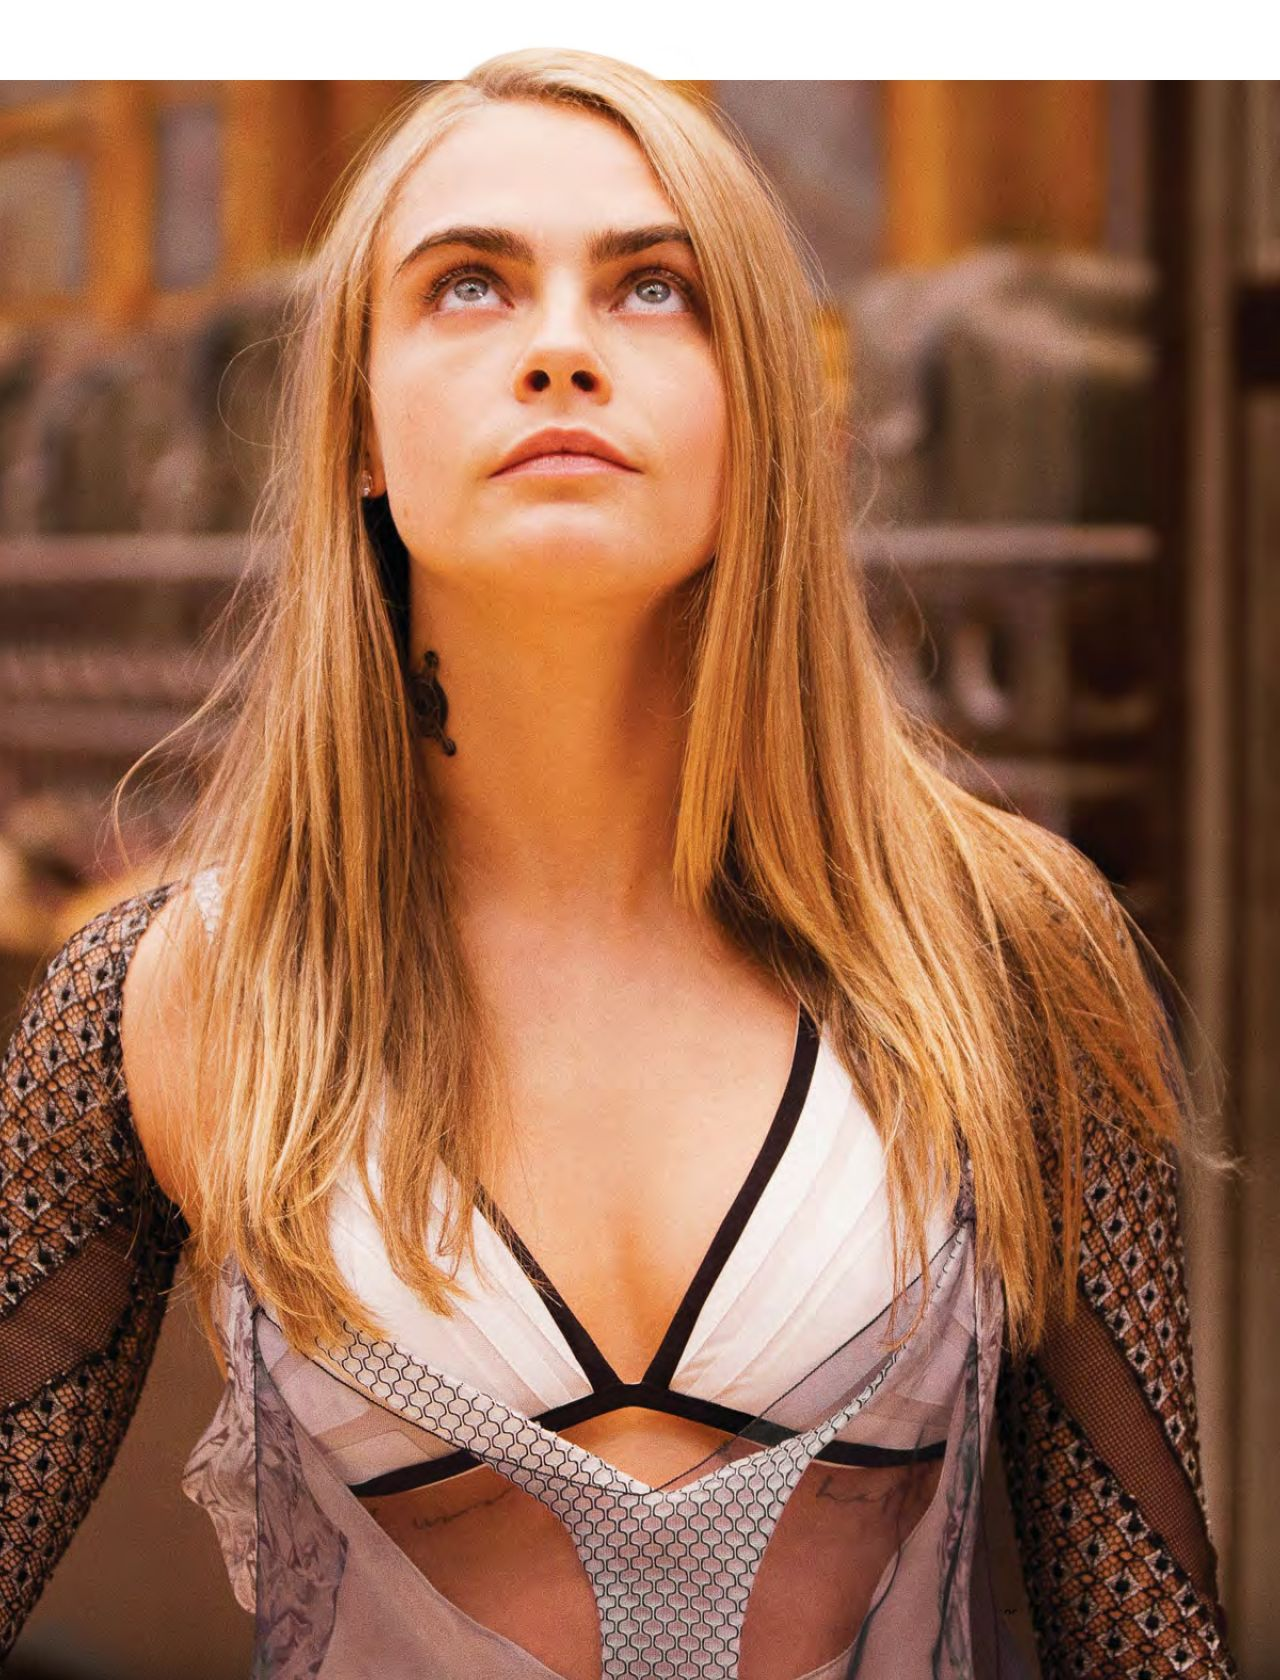 Cara Delevingne Latest Photos - CelebMafia